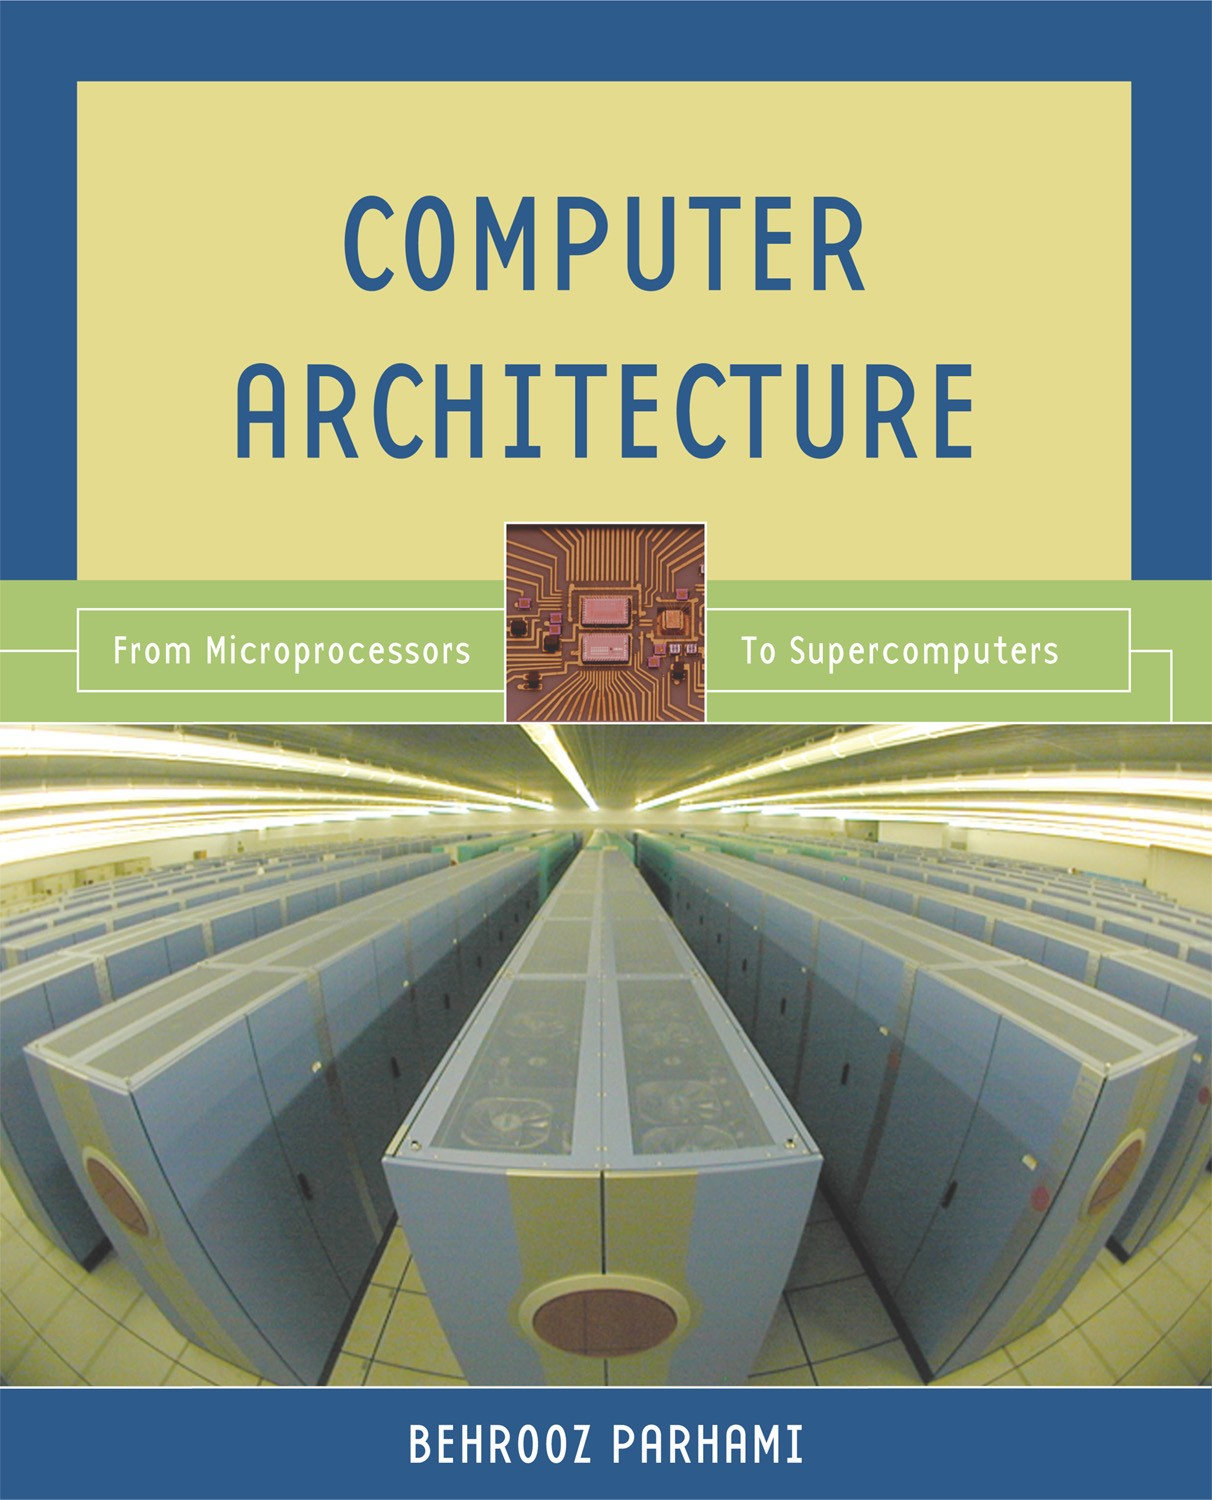 Behrooz Parhami S Textbook On Computer Architecture